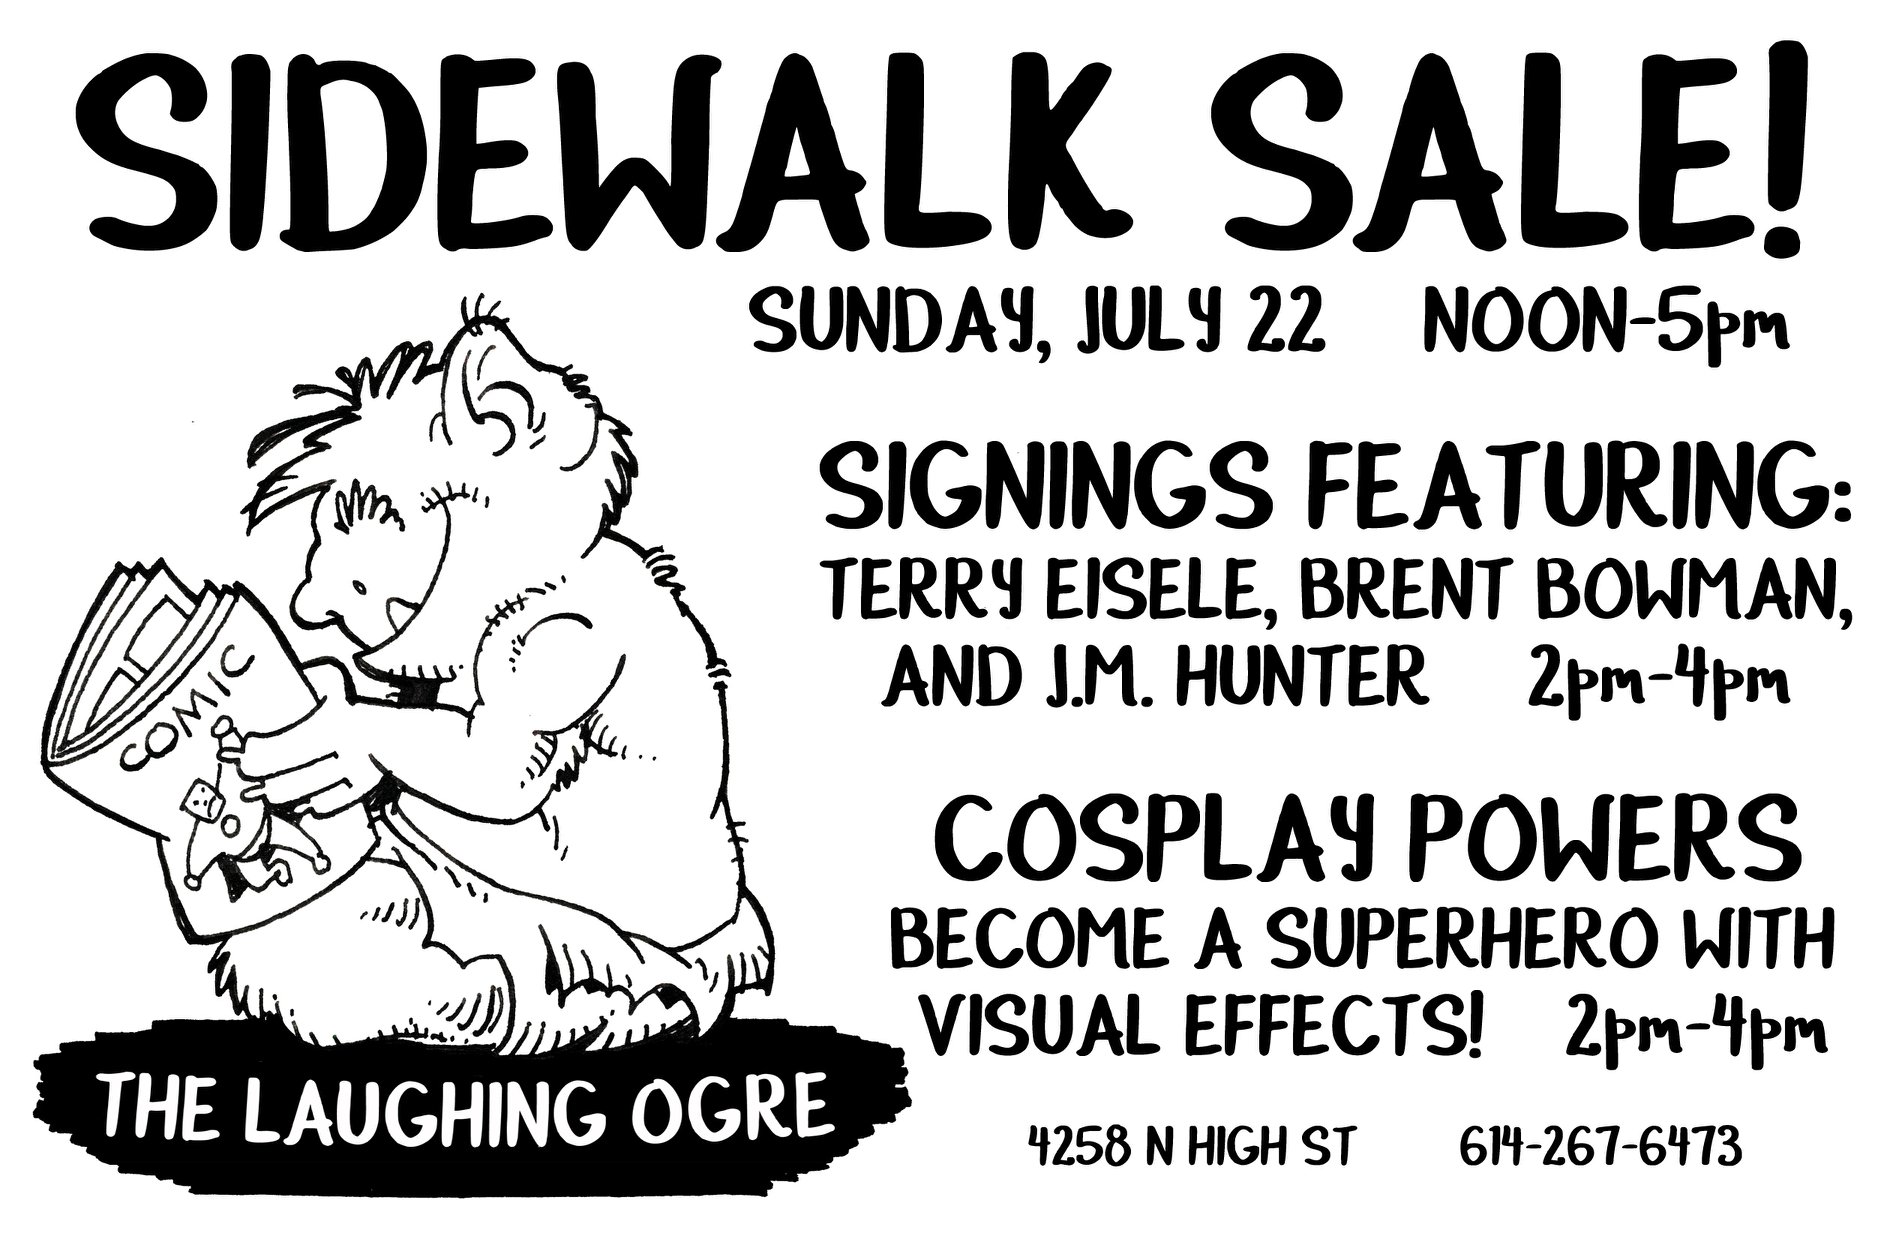 Come join us for fun, comics and more at our Sidewalk Sale! This coming Sunday, July 22nd from 12 PM - 5 PM!